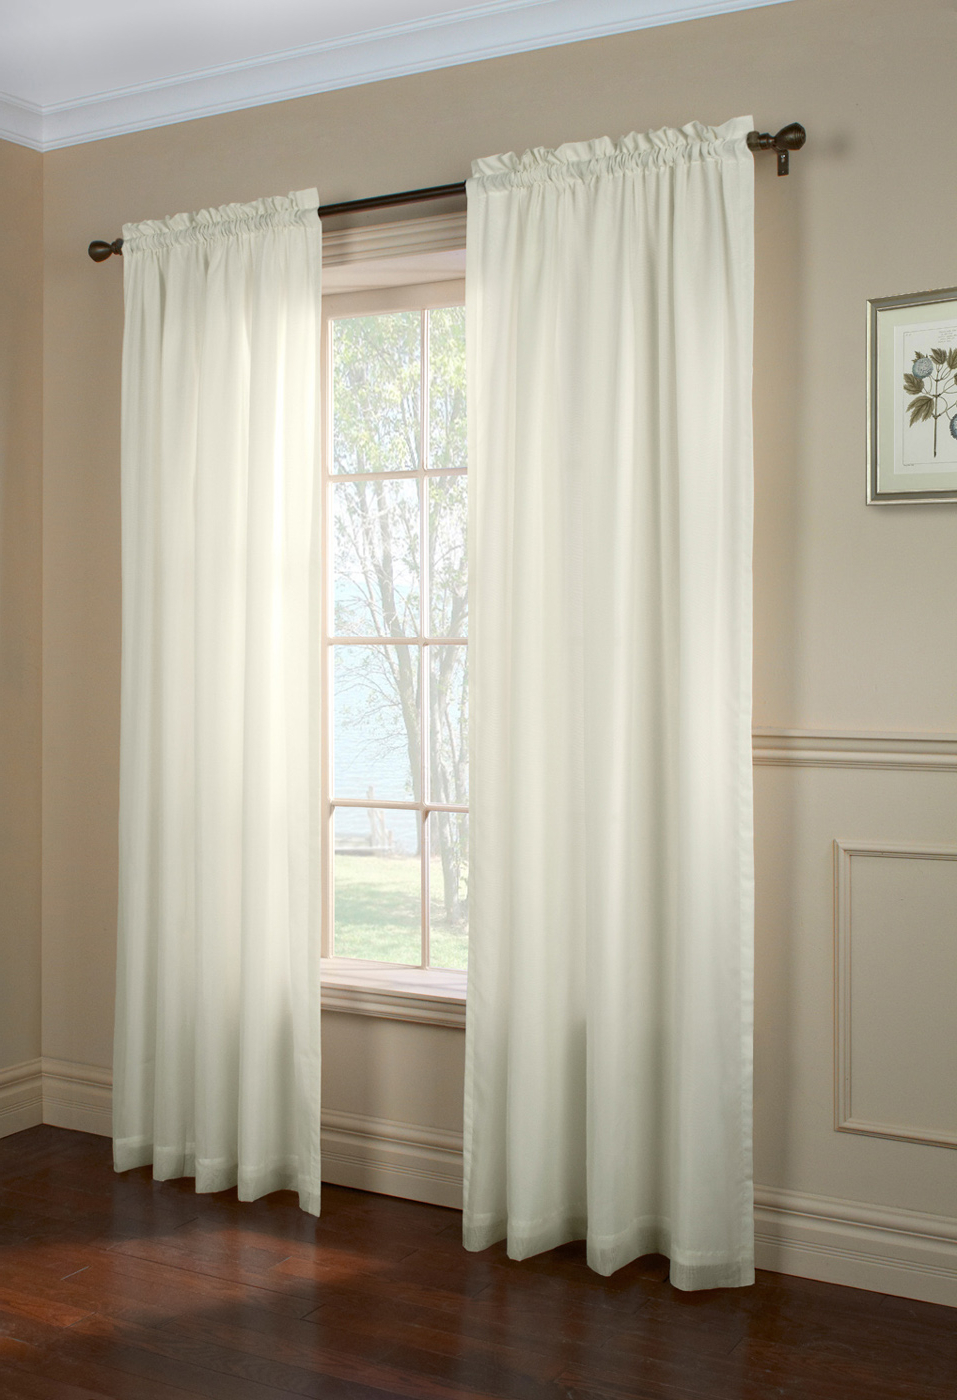 Most Recently Released Double Layer Sheer White Single Curtain Panels Throughout Sheer Window Curtains  Ï¿½Thecurtainshop (View 14 of 20)